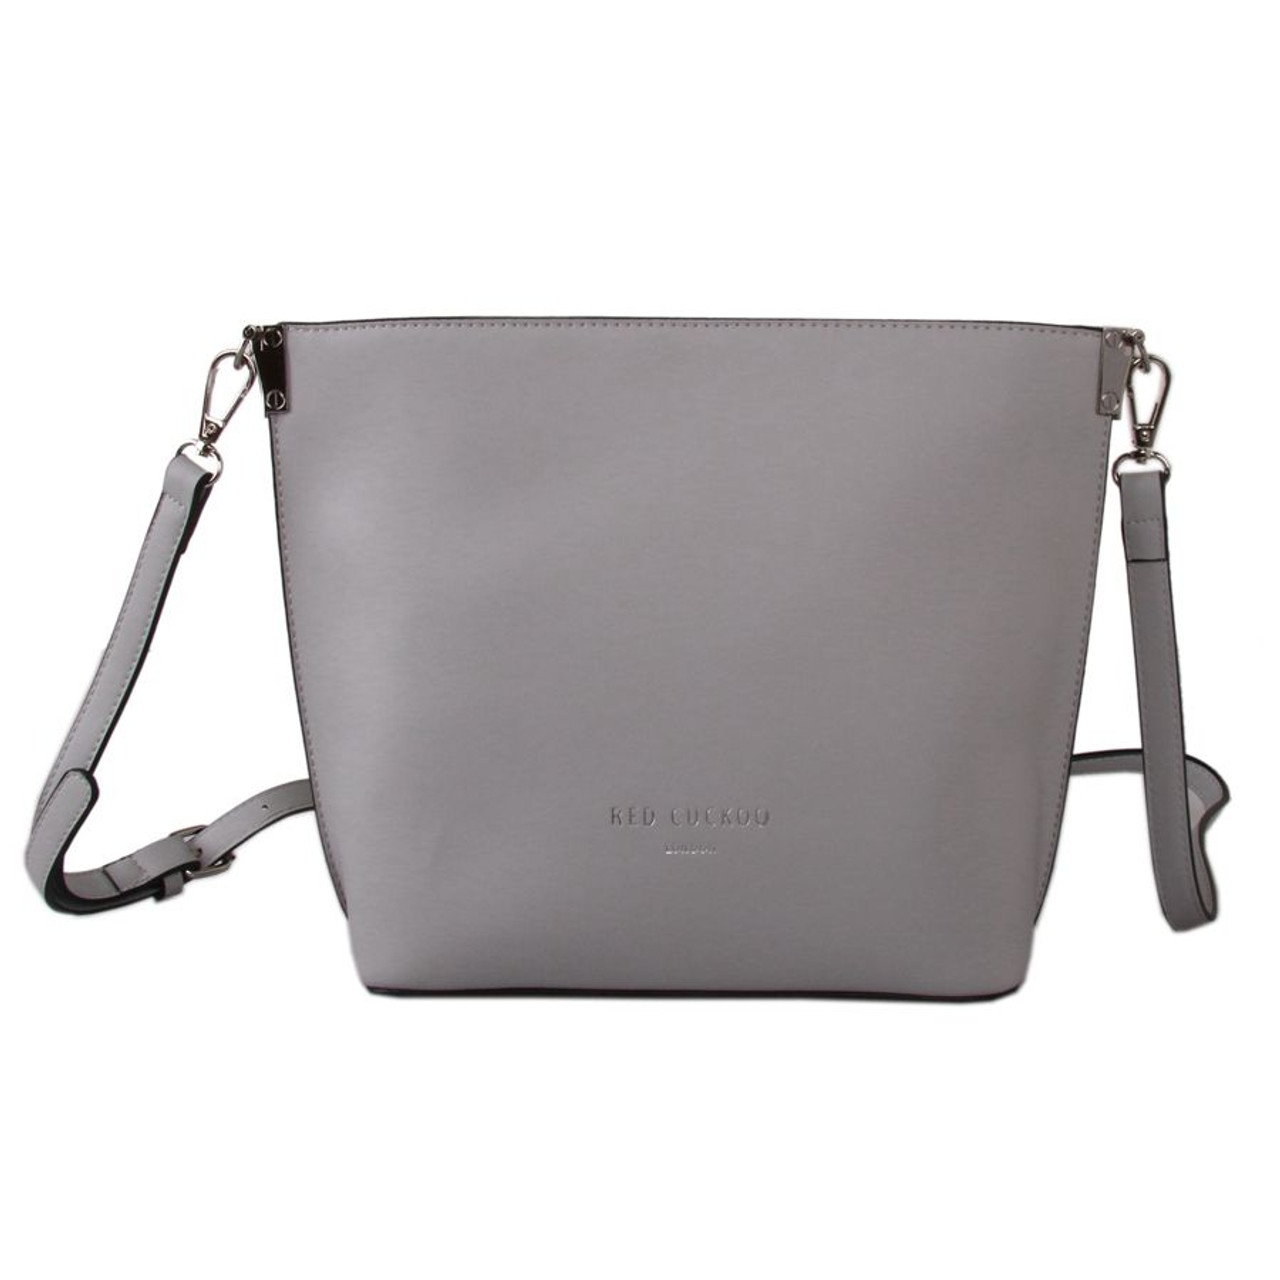 64d93bff9f1b Red Cuckoo Grey Square Cross Body Bag - Itsy Bitsy Boutique